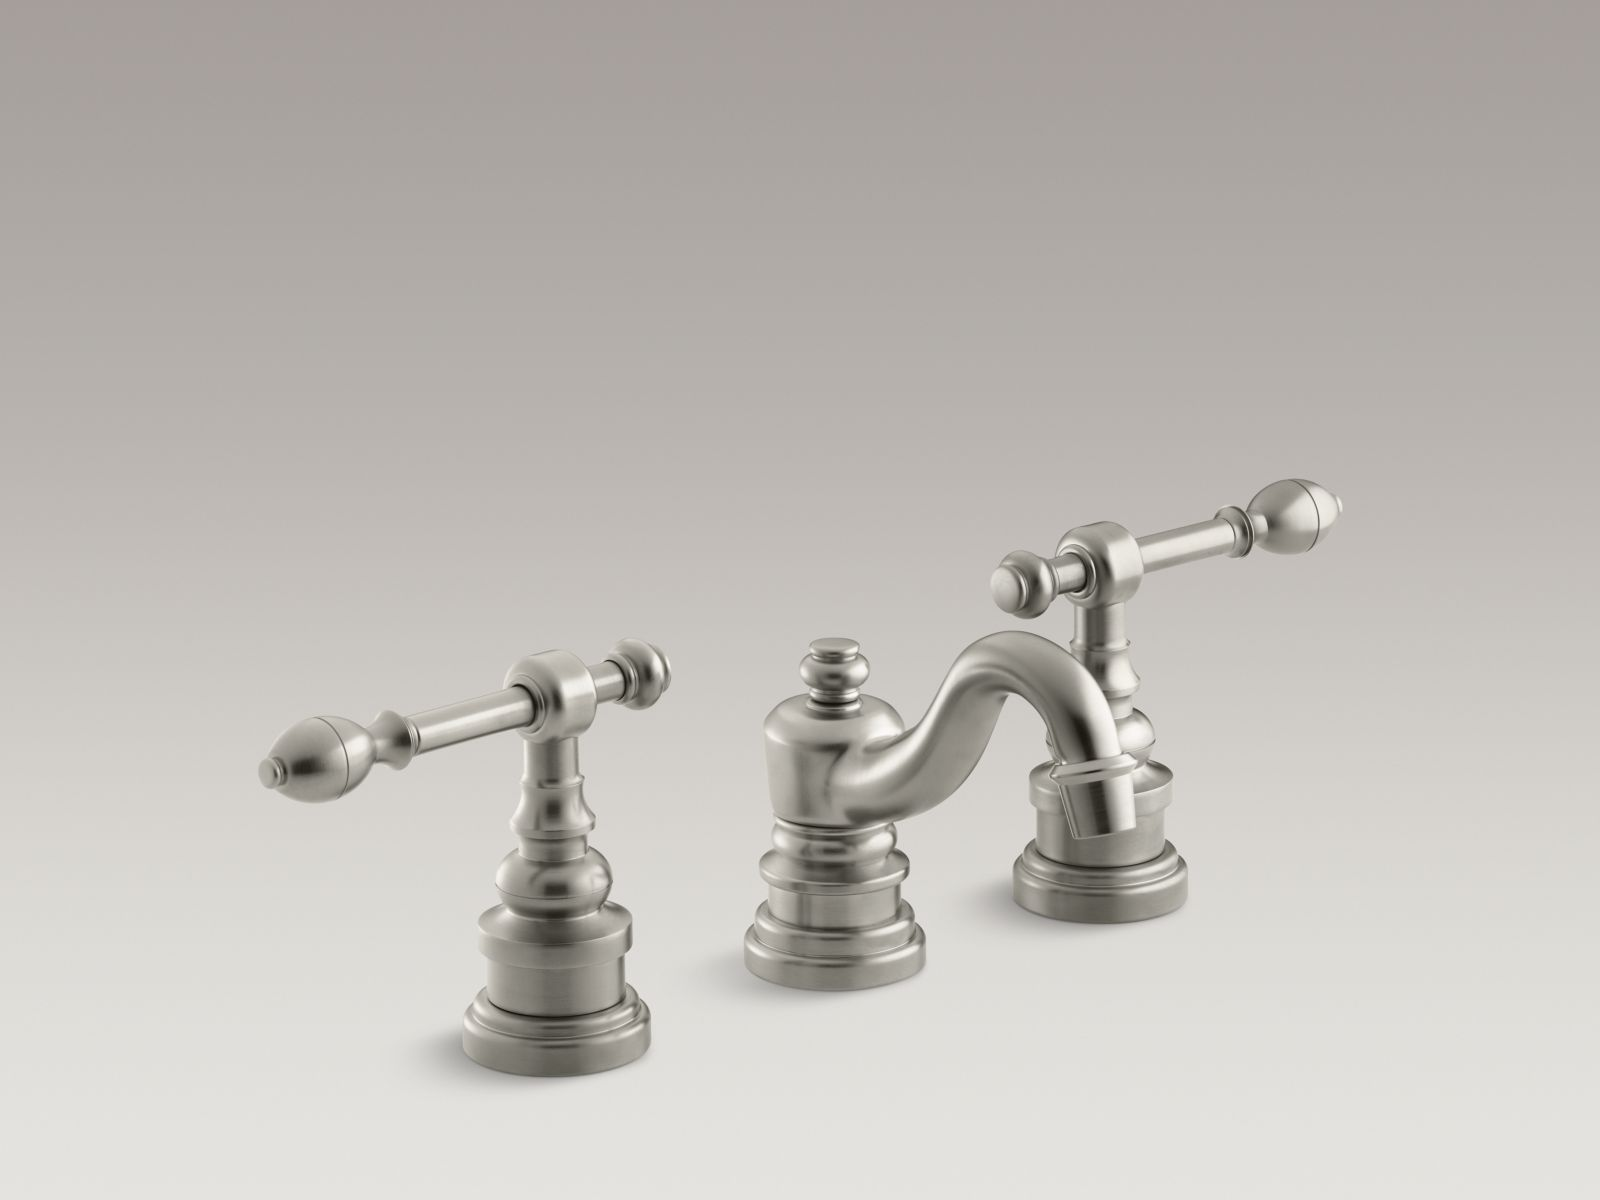 Kohler K-6811-4-BN IV Georges Brass Widespread Bathroom Sink Faucet with Lever Handles Vibrant Brushed Nickel